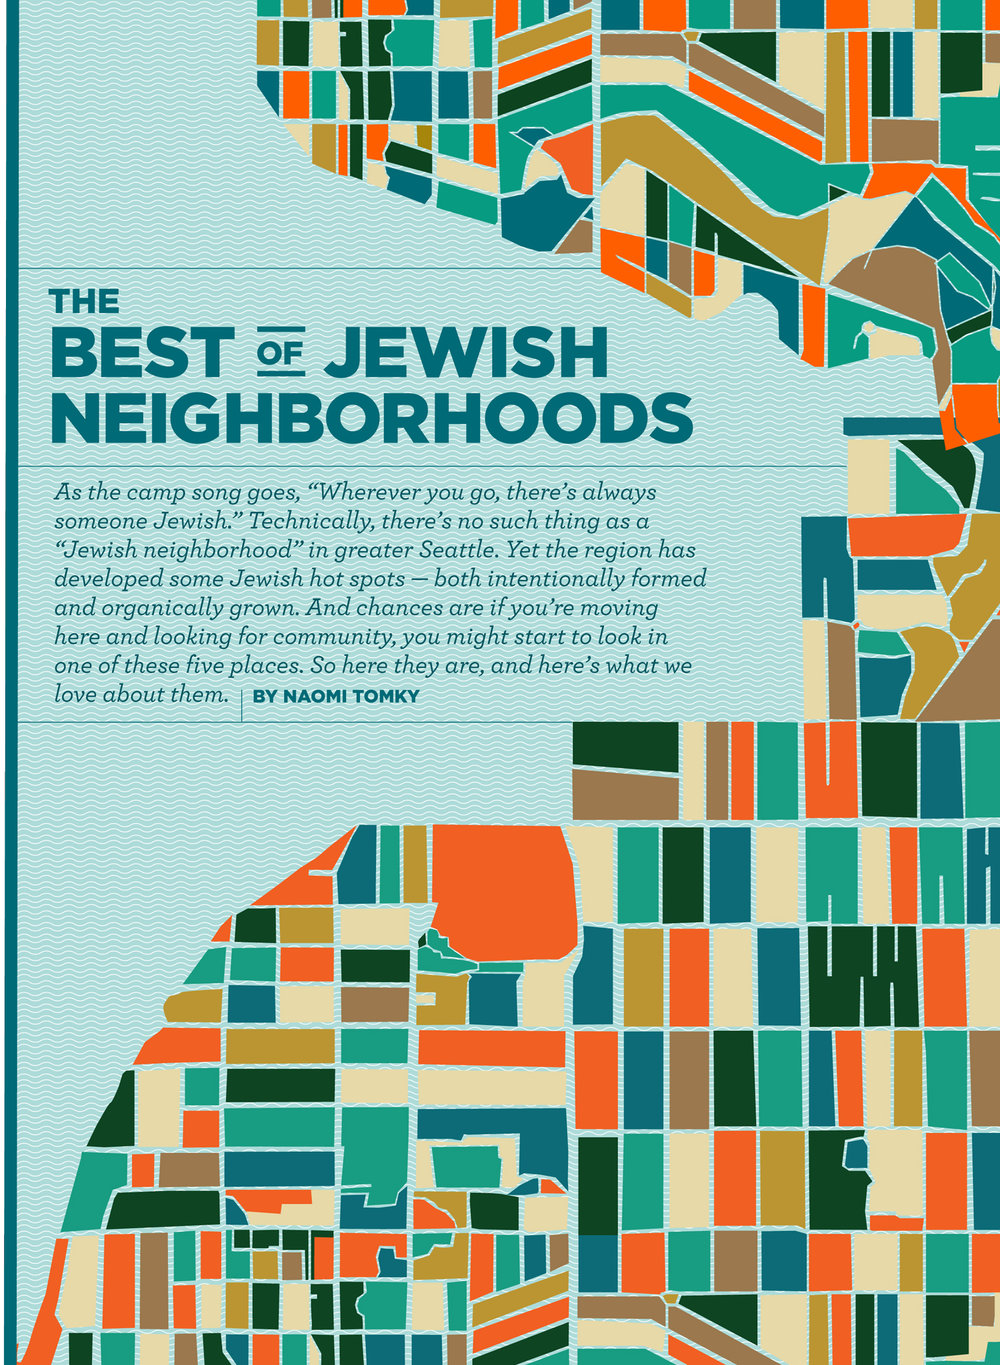 neighborhoods_open_1216_JIS.jpg